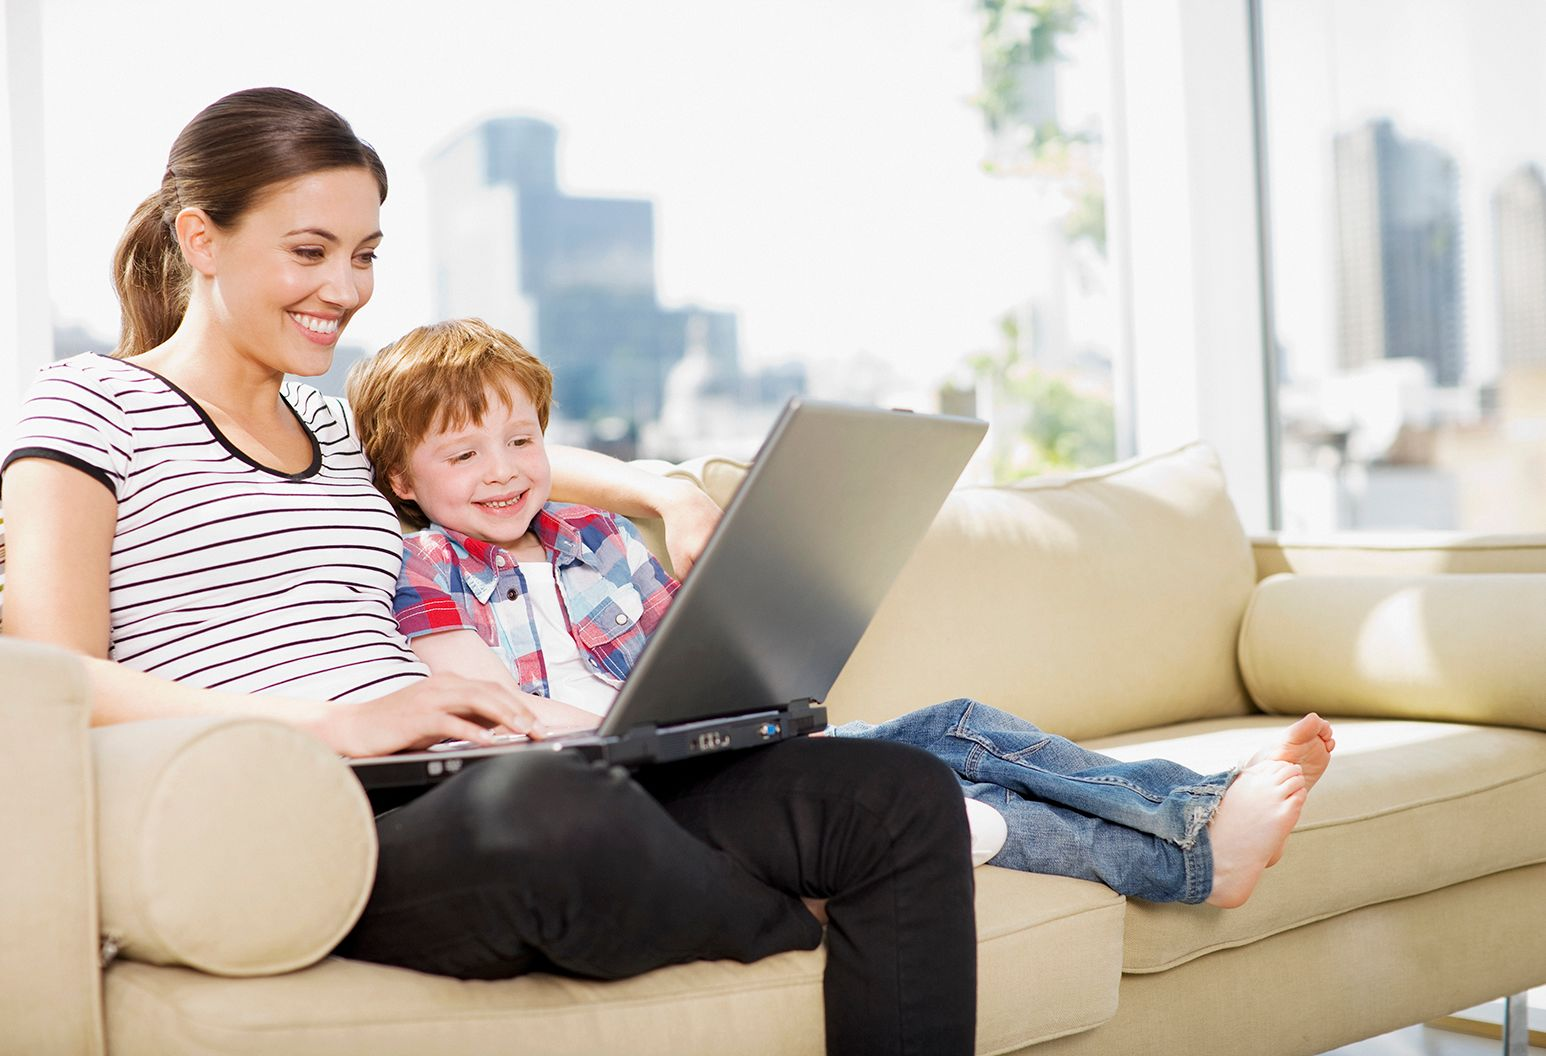 A mother and her young boy with red hair sit on a beige couch looking at a laptop computer. She is wearing a black and white striped shirt and he is wearing a red and blue flannel.